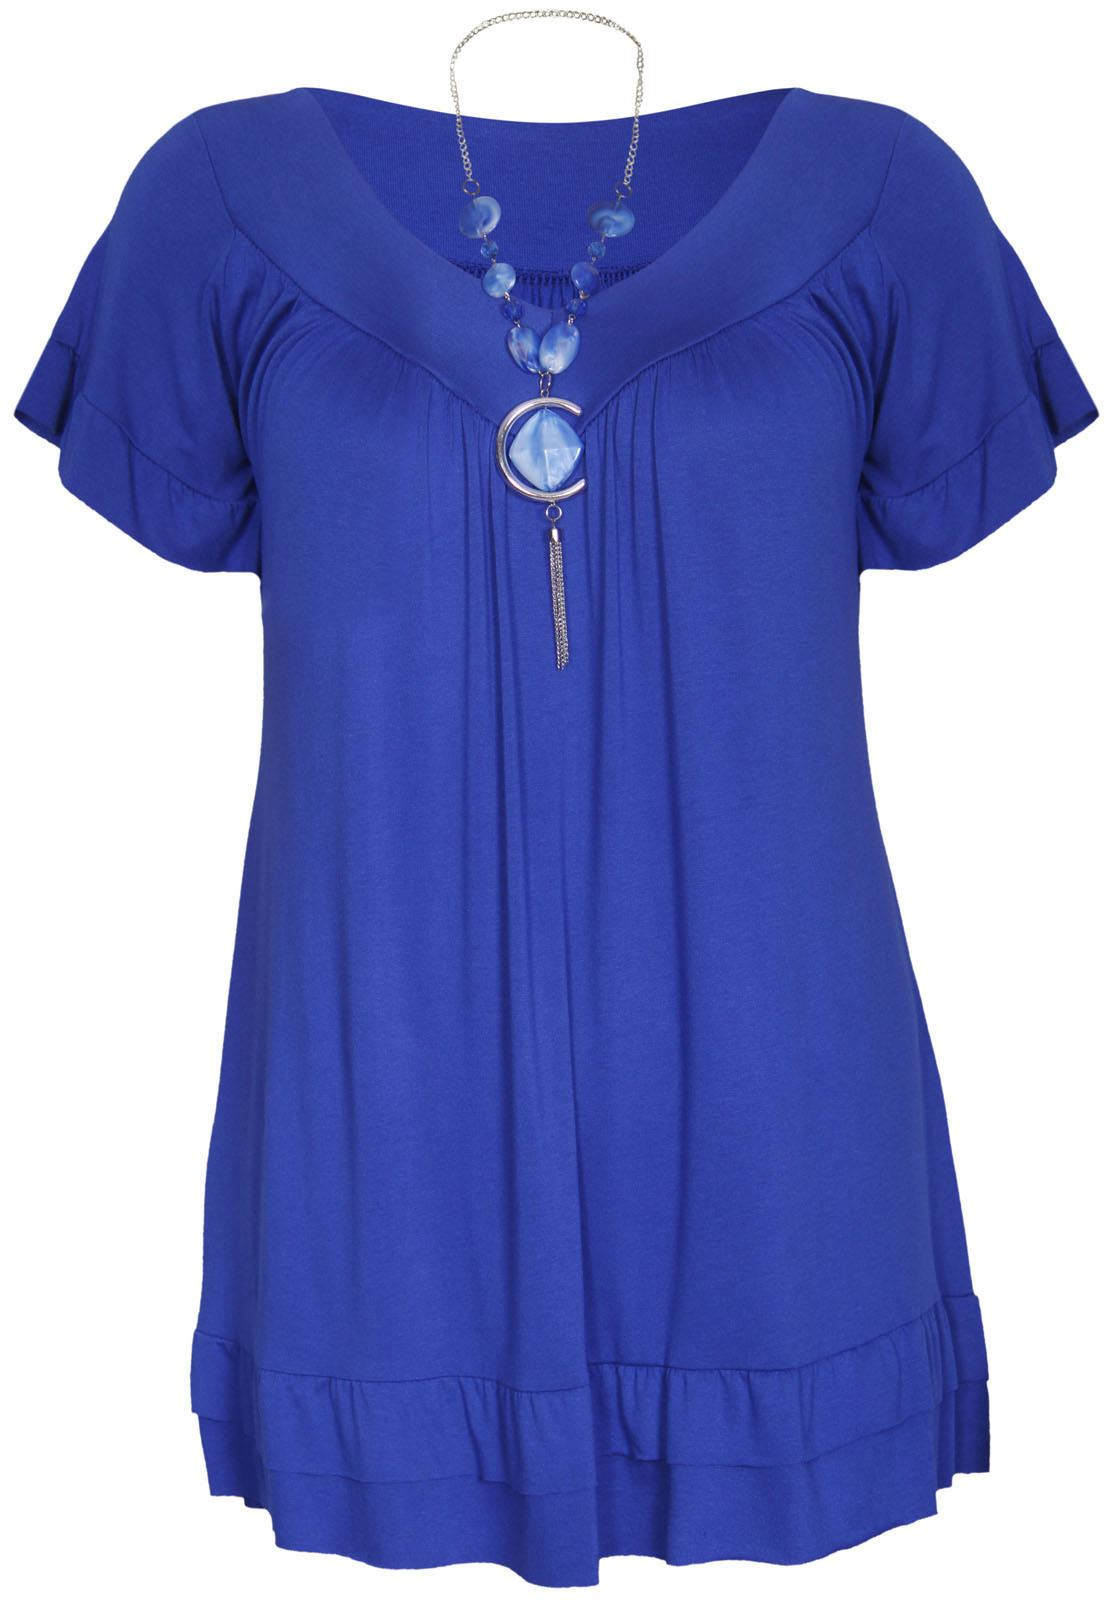 Shop Online at rabbetedh.ga for the Latest Womens Blue Shirts, Tunics, Blouses, Halter Tops & More Womens Tops. FREE SHIPPING AVAILABLE! Macy's Presents: The Edit- A curated mix of fashion and inspiration Check It Out. Free Shipping with $49 purchase + Free Store Pickup. Contiguous US.